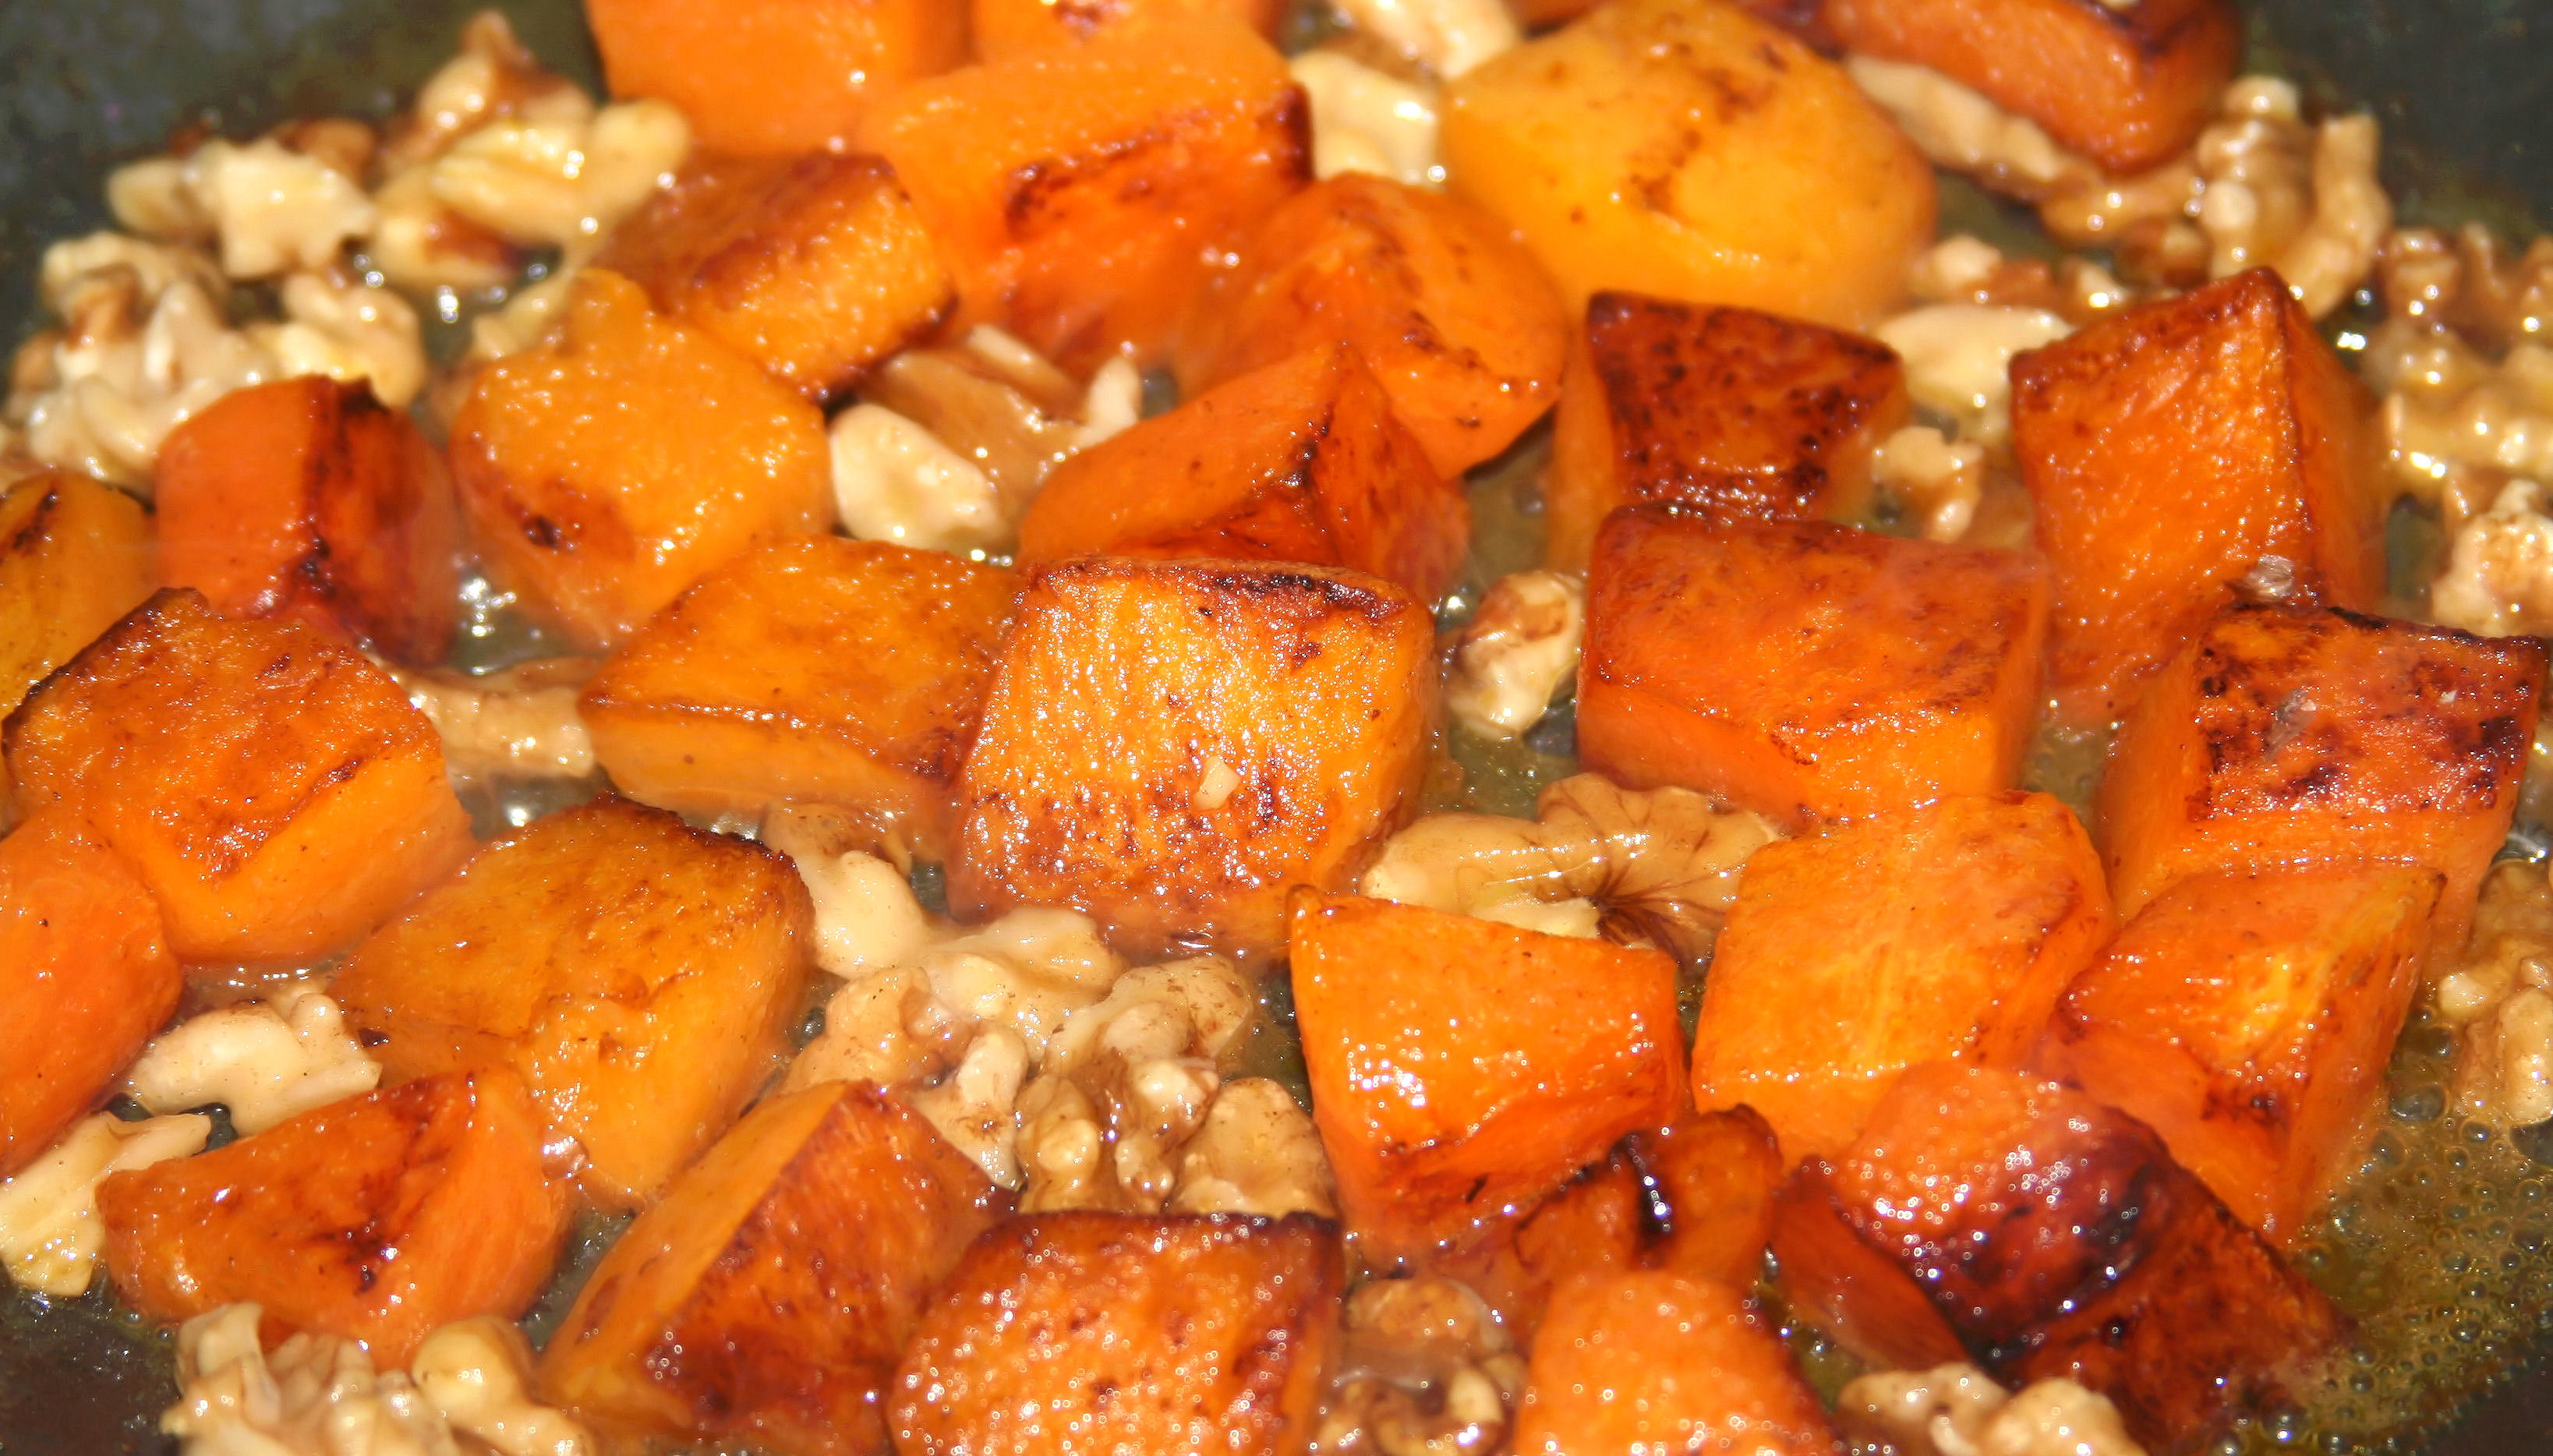 Butternut Squash and Walnuts with Marsala Sauce